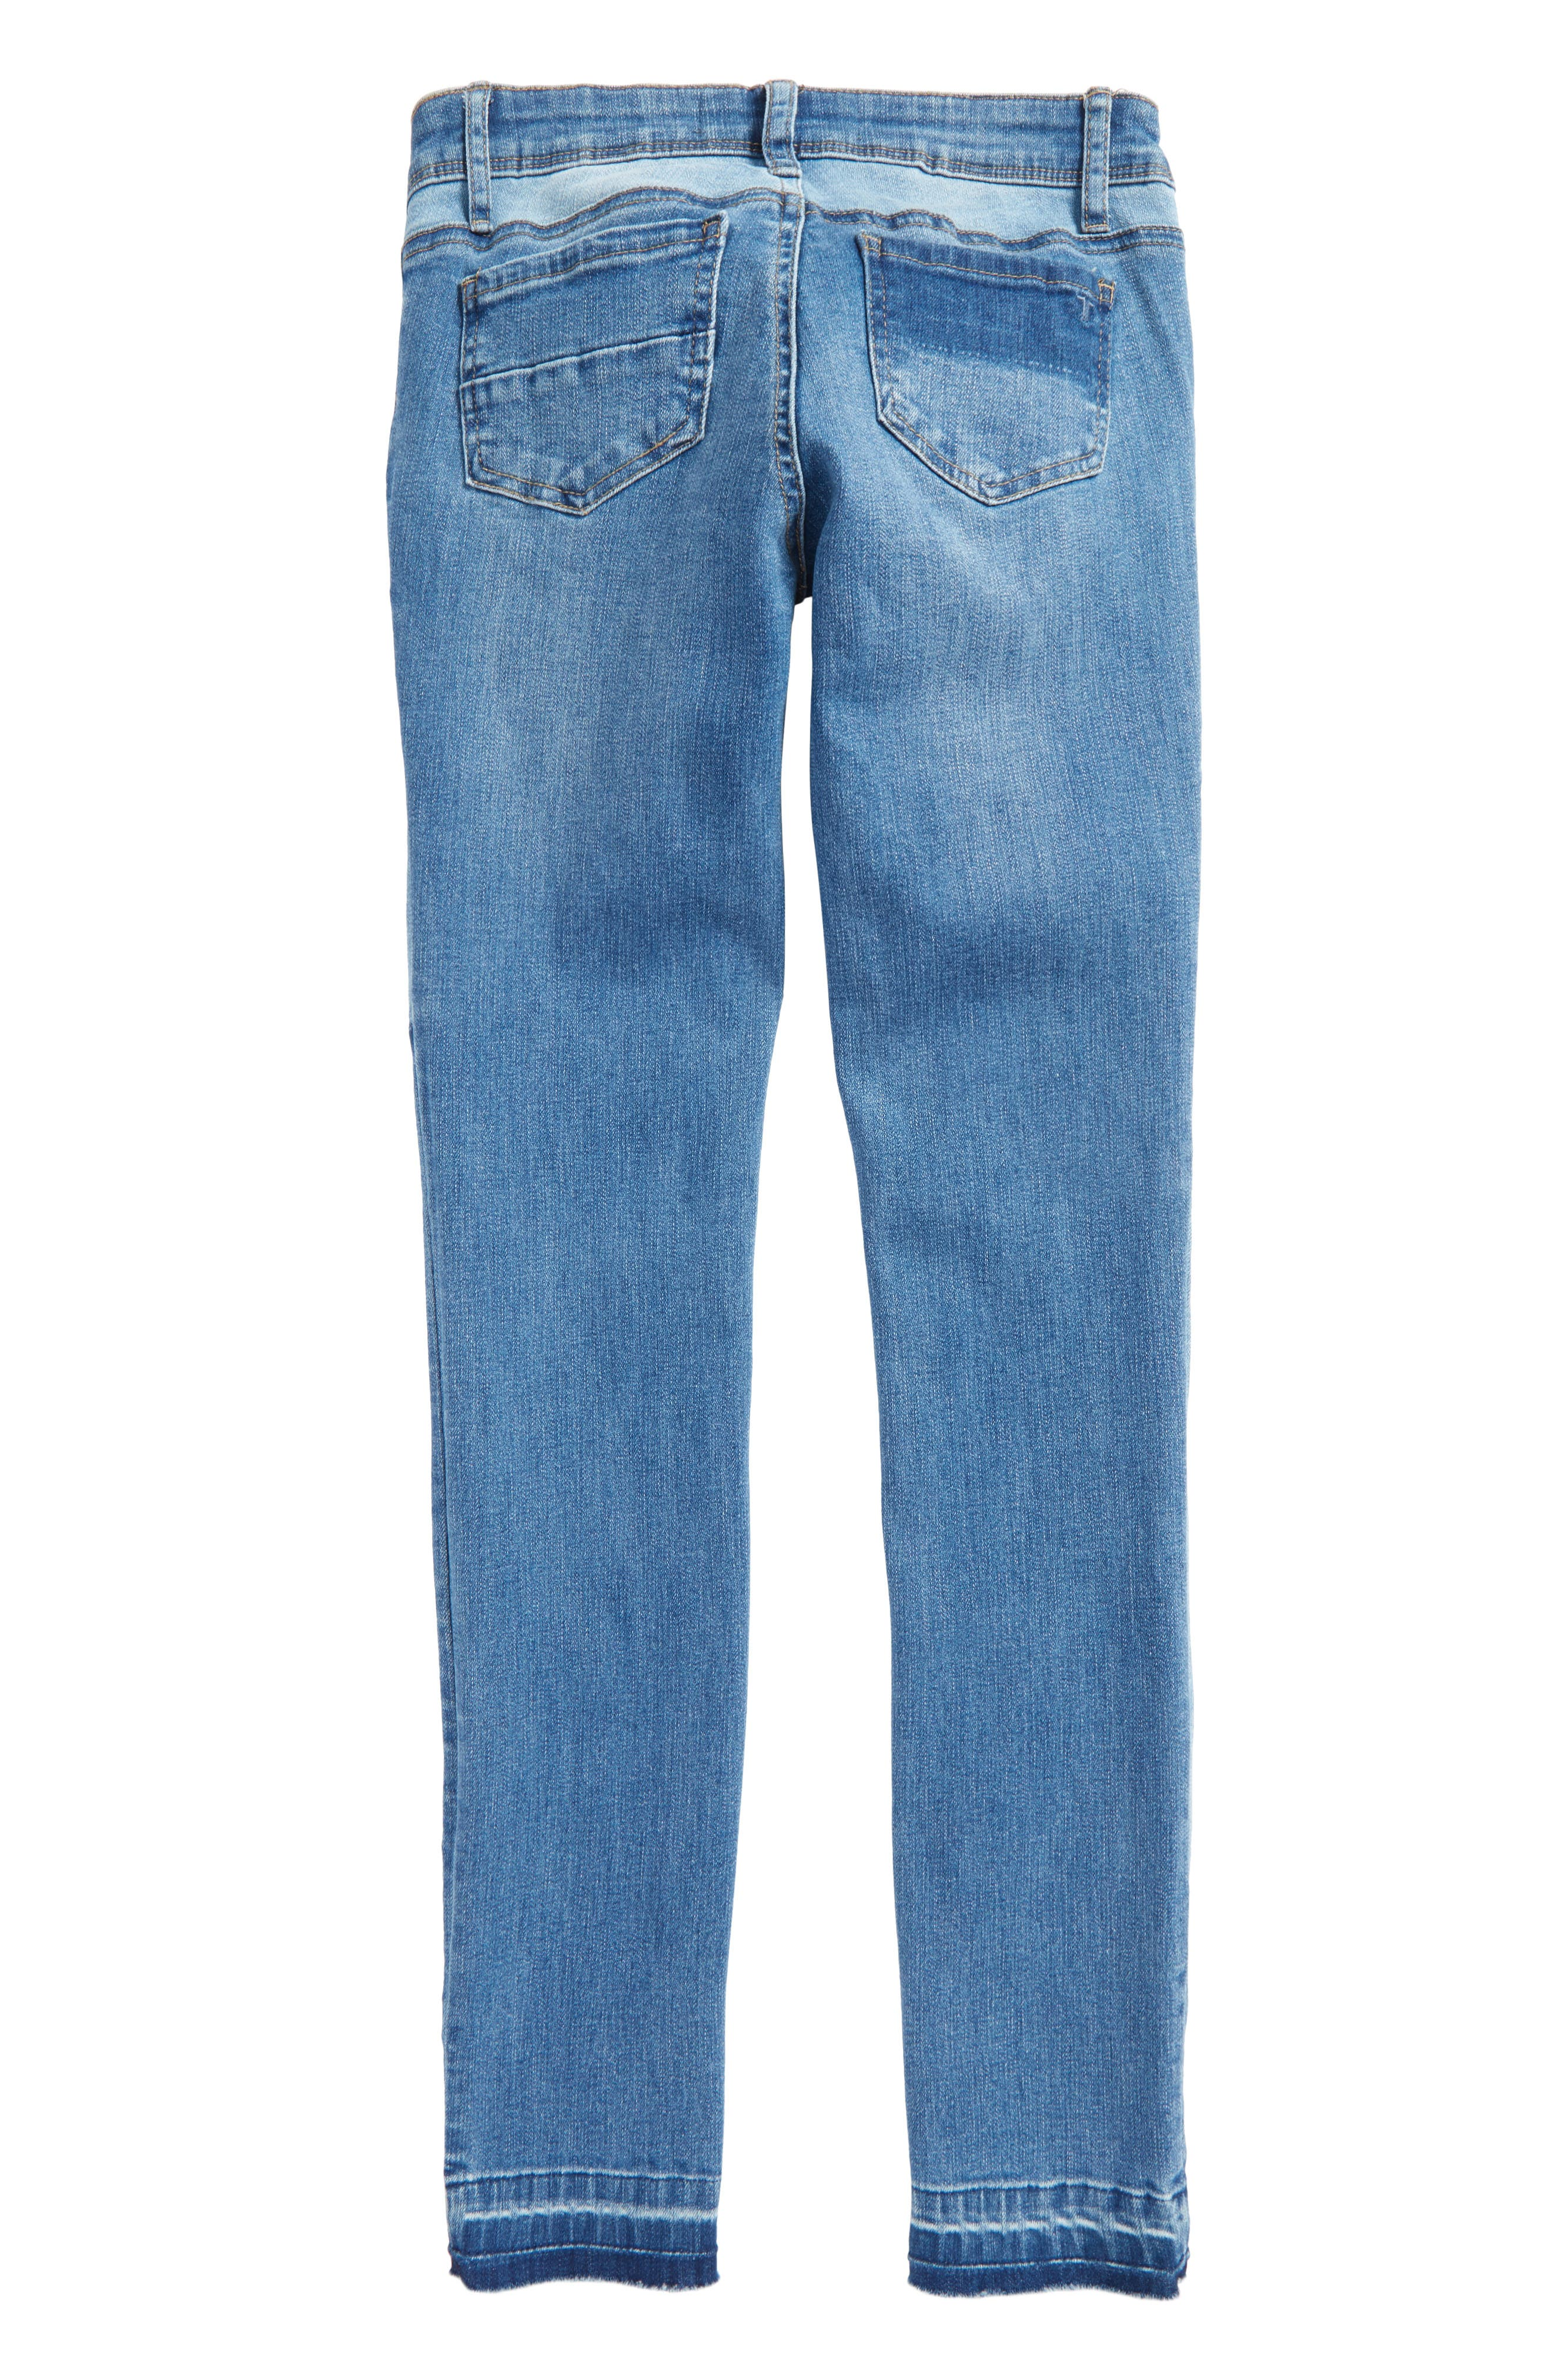 Patchwork Skinny Jeans,                             Alternate thumbnail 2, color,                             407